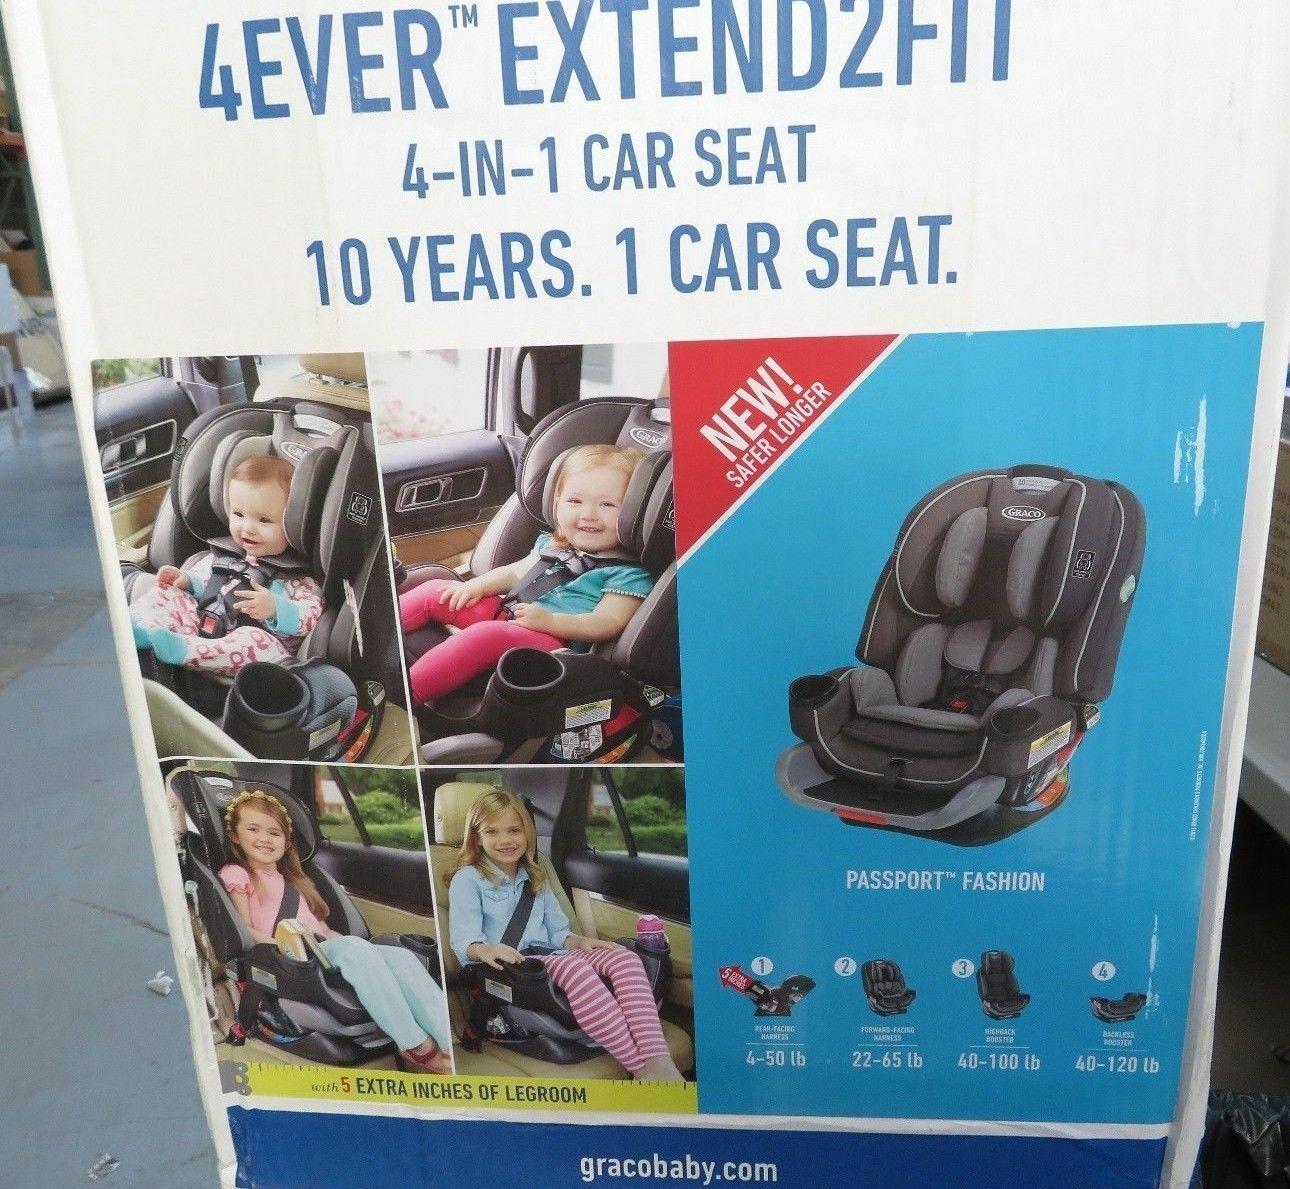 Graco 4ever 4 In 1 Car Seat Extend2fit Passport